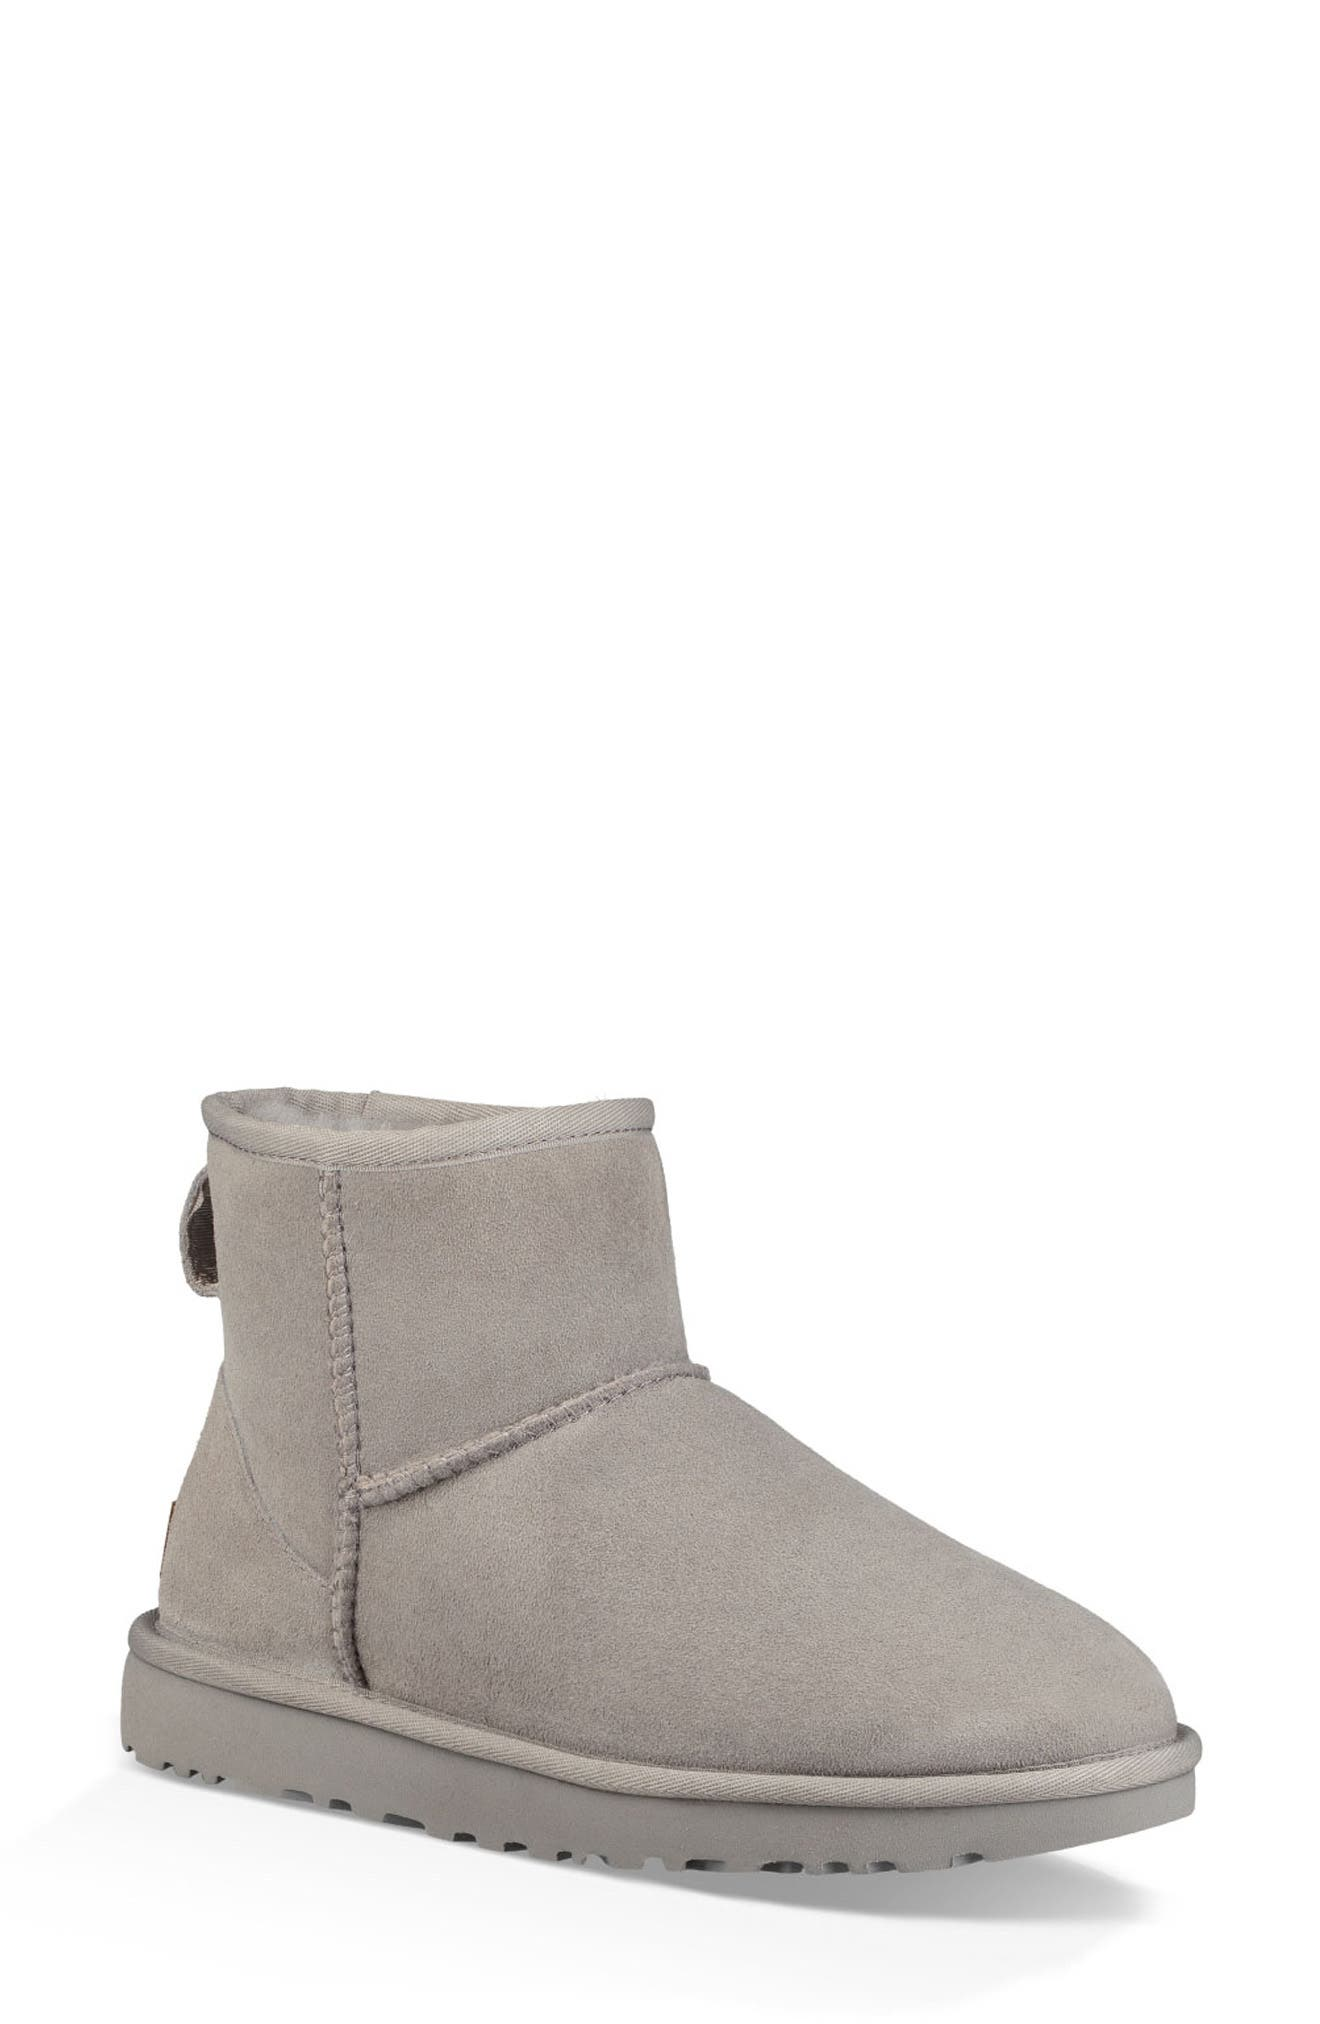 'Classic Mini II' Genuine Shearling Lined Boot,                             Main thumbnail 1, color,                             SEAL SUEDE